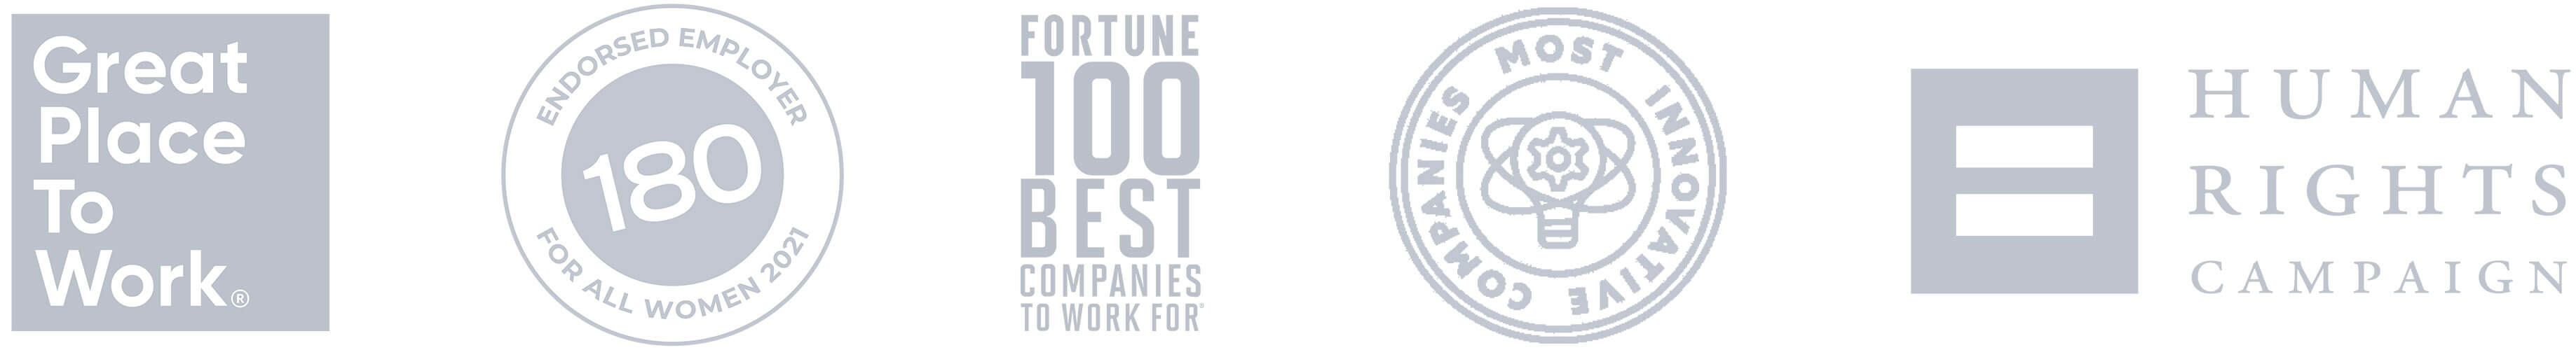 Awards logos: Great place to work, Fortune 100, Human rights campaign